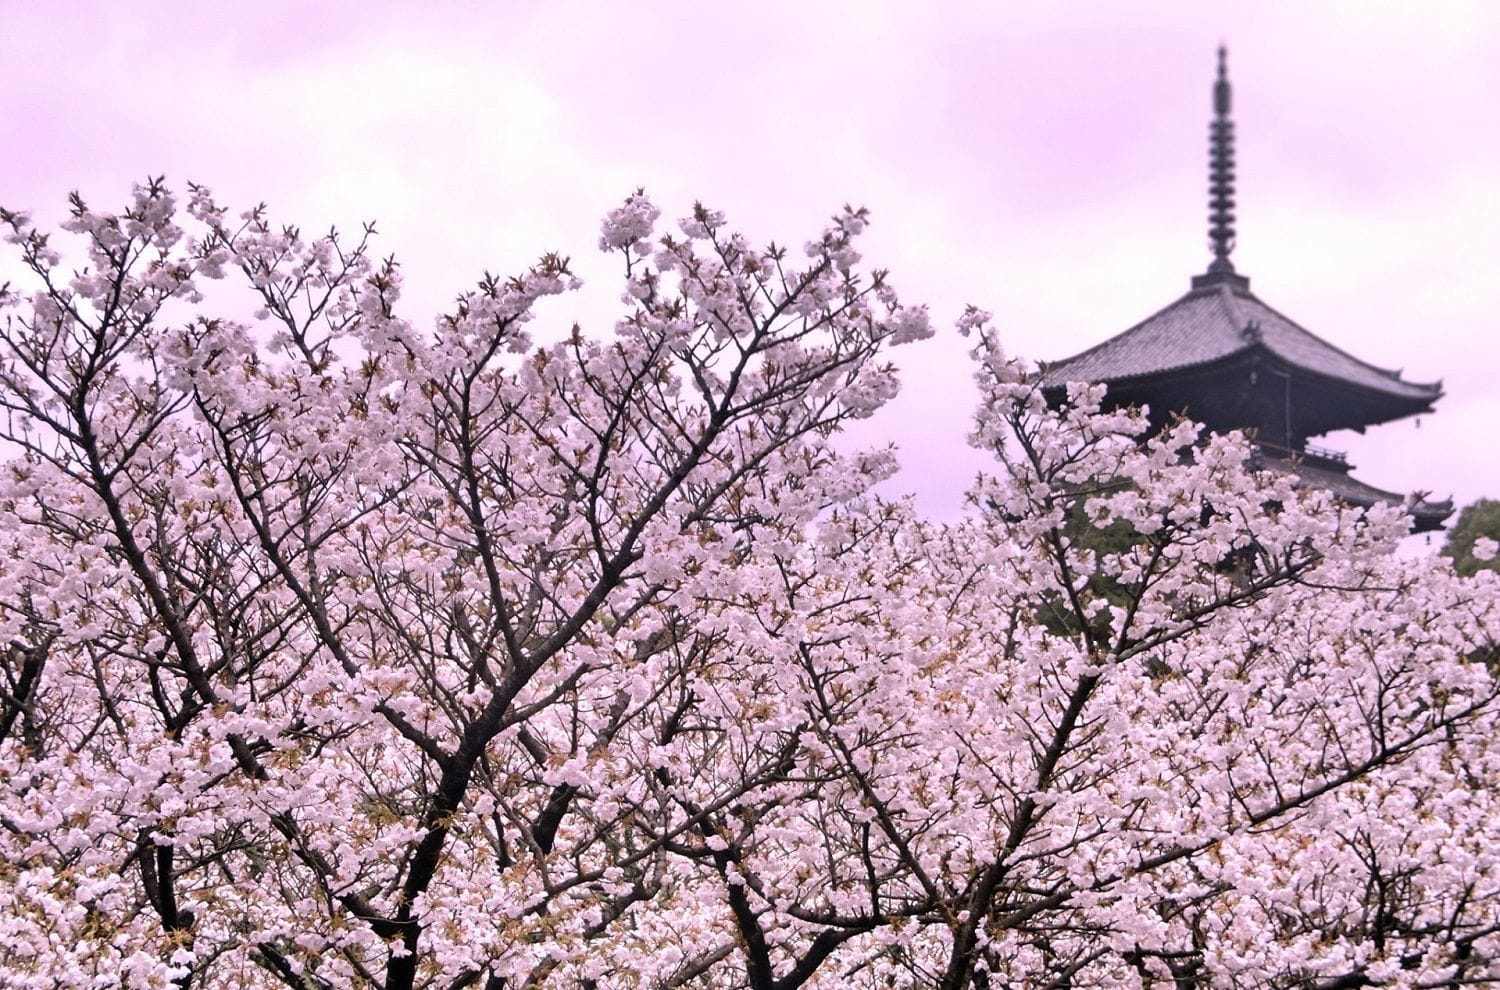 diagram the parts of cherry blossom tree directv swm 3 wiring japan s blossoms in 2019 forecast and best spots matcha 15 viewing kyoto